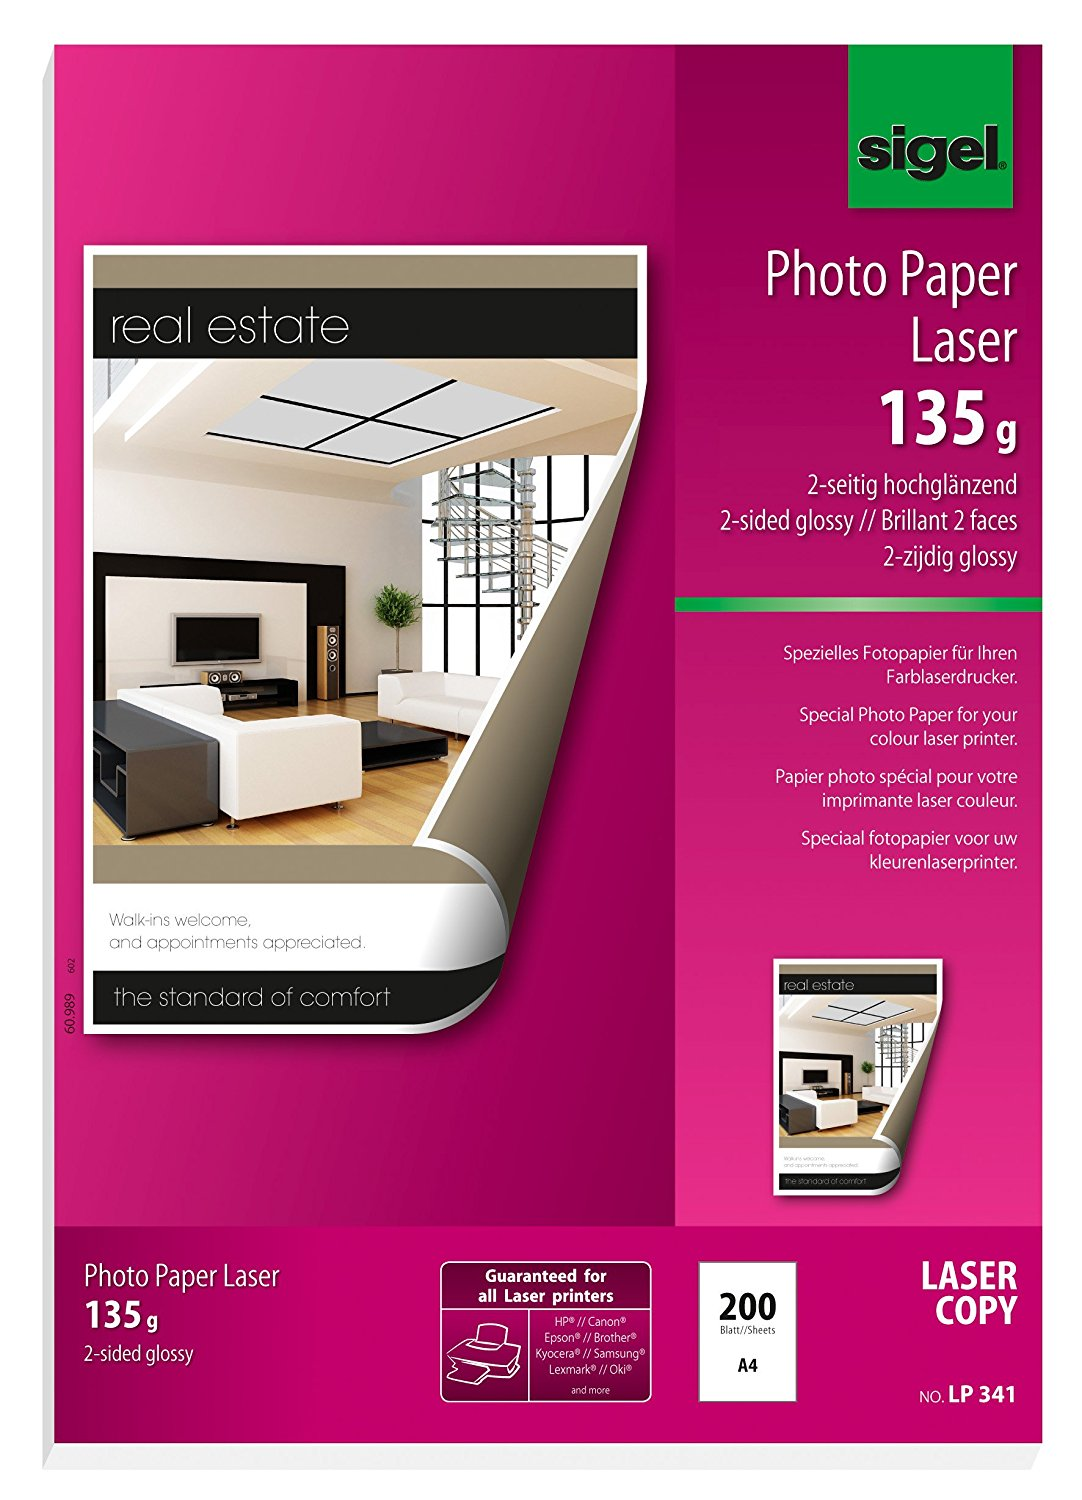 Sigel LP341 Photo Paper for Colour Laser/Copier, 2-sided glossy, 91.2 lbs, A4, 200 sheets